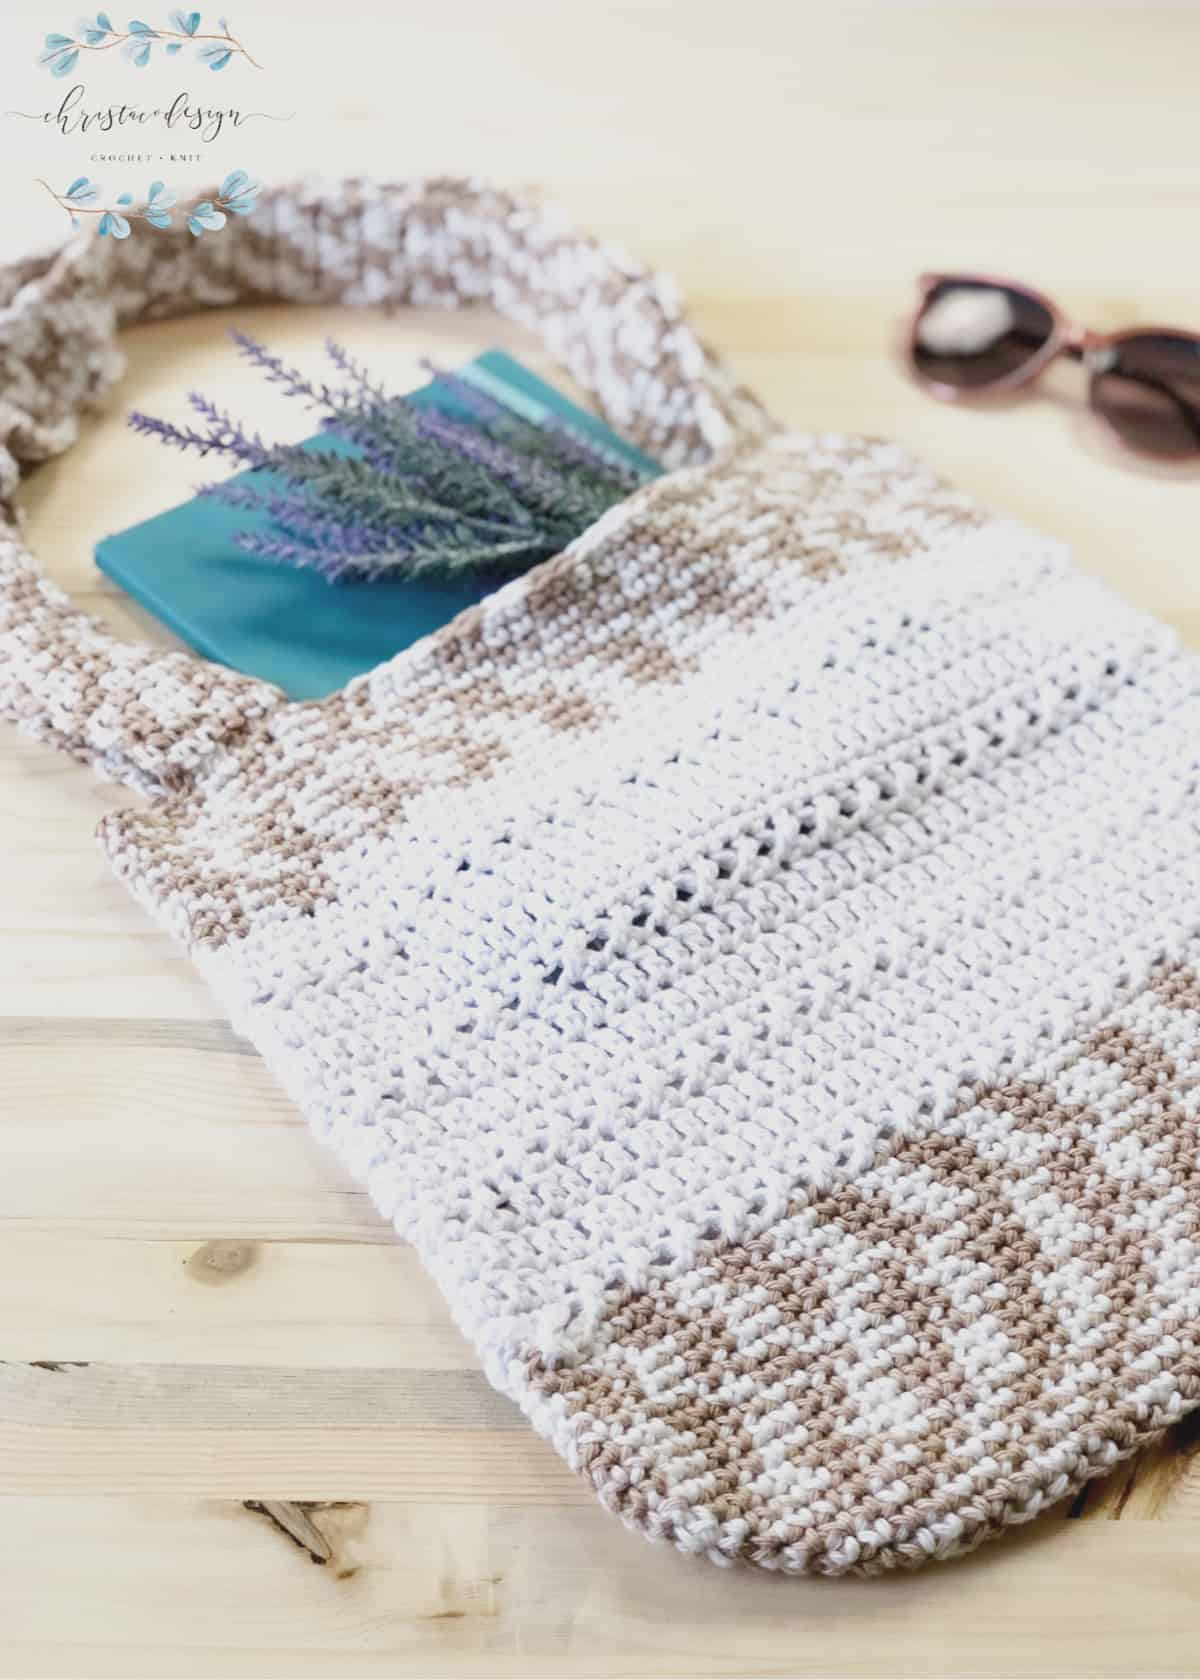 Free crochet tote bag pattern with lavender and teal book inside.